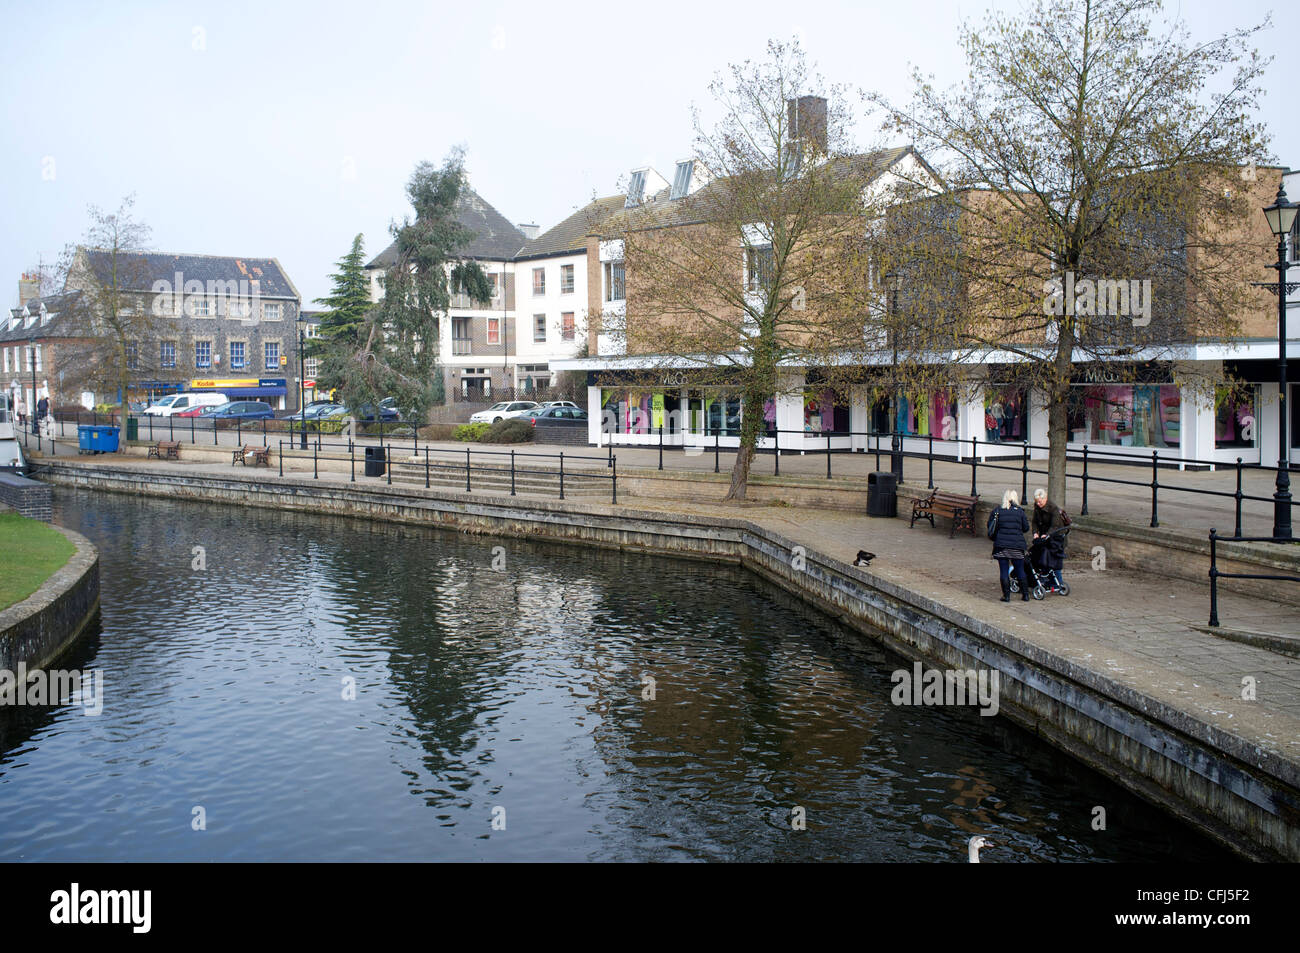 Thetford Town Center Shopping precinct with the River Thet running through it - Stock Image